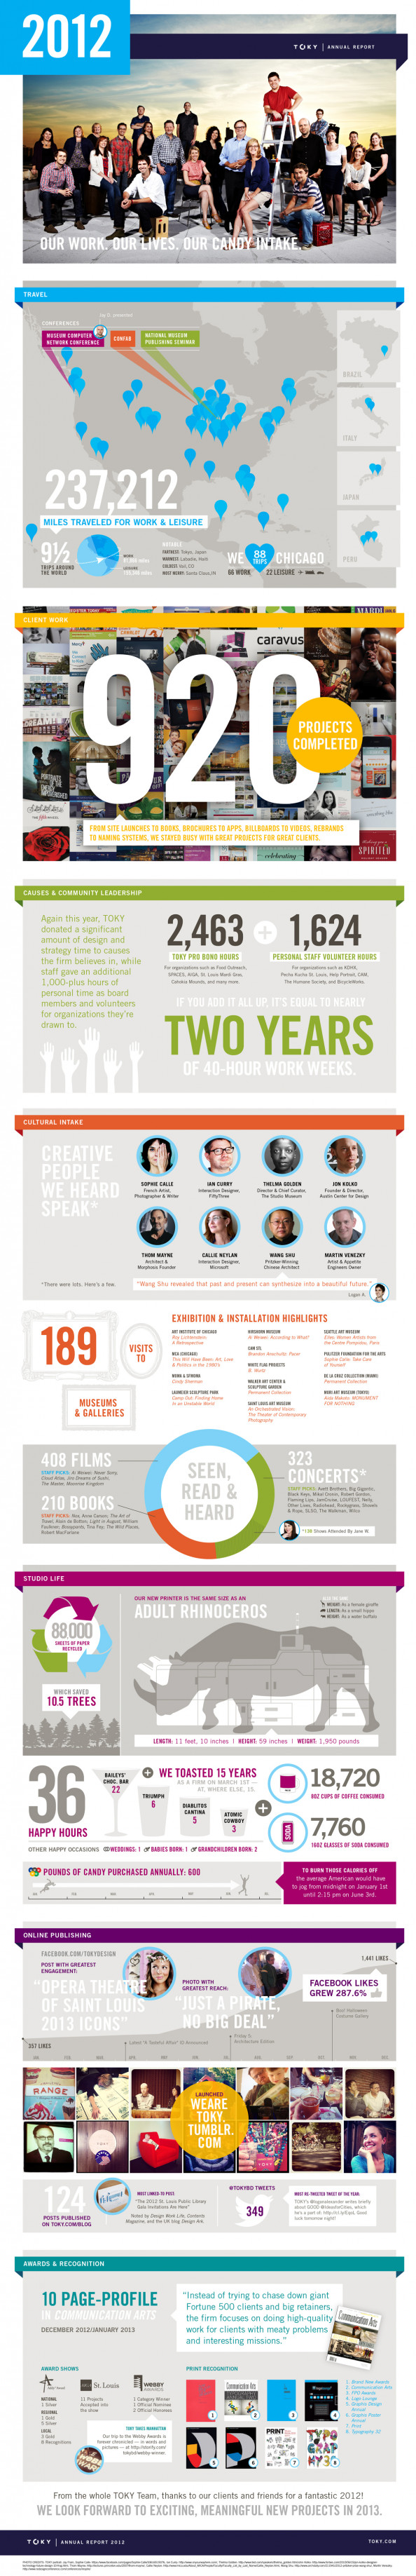 TOKY Annual Report 2012 Infographic